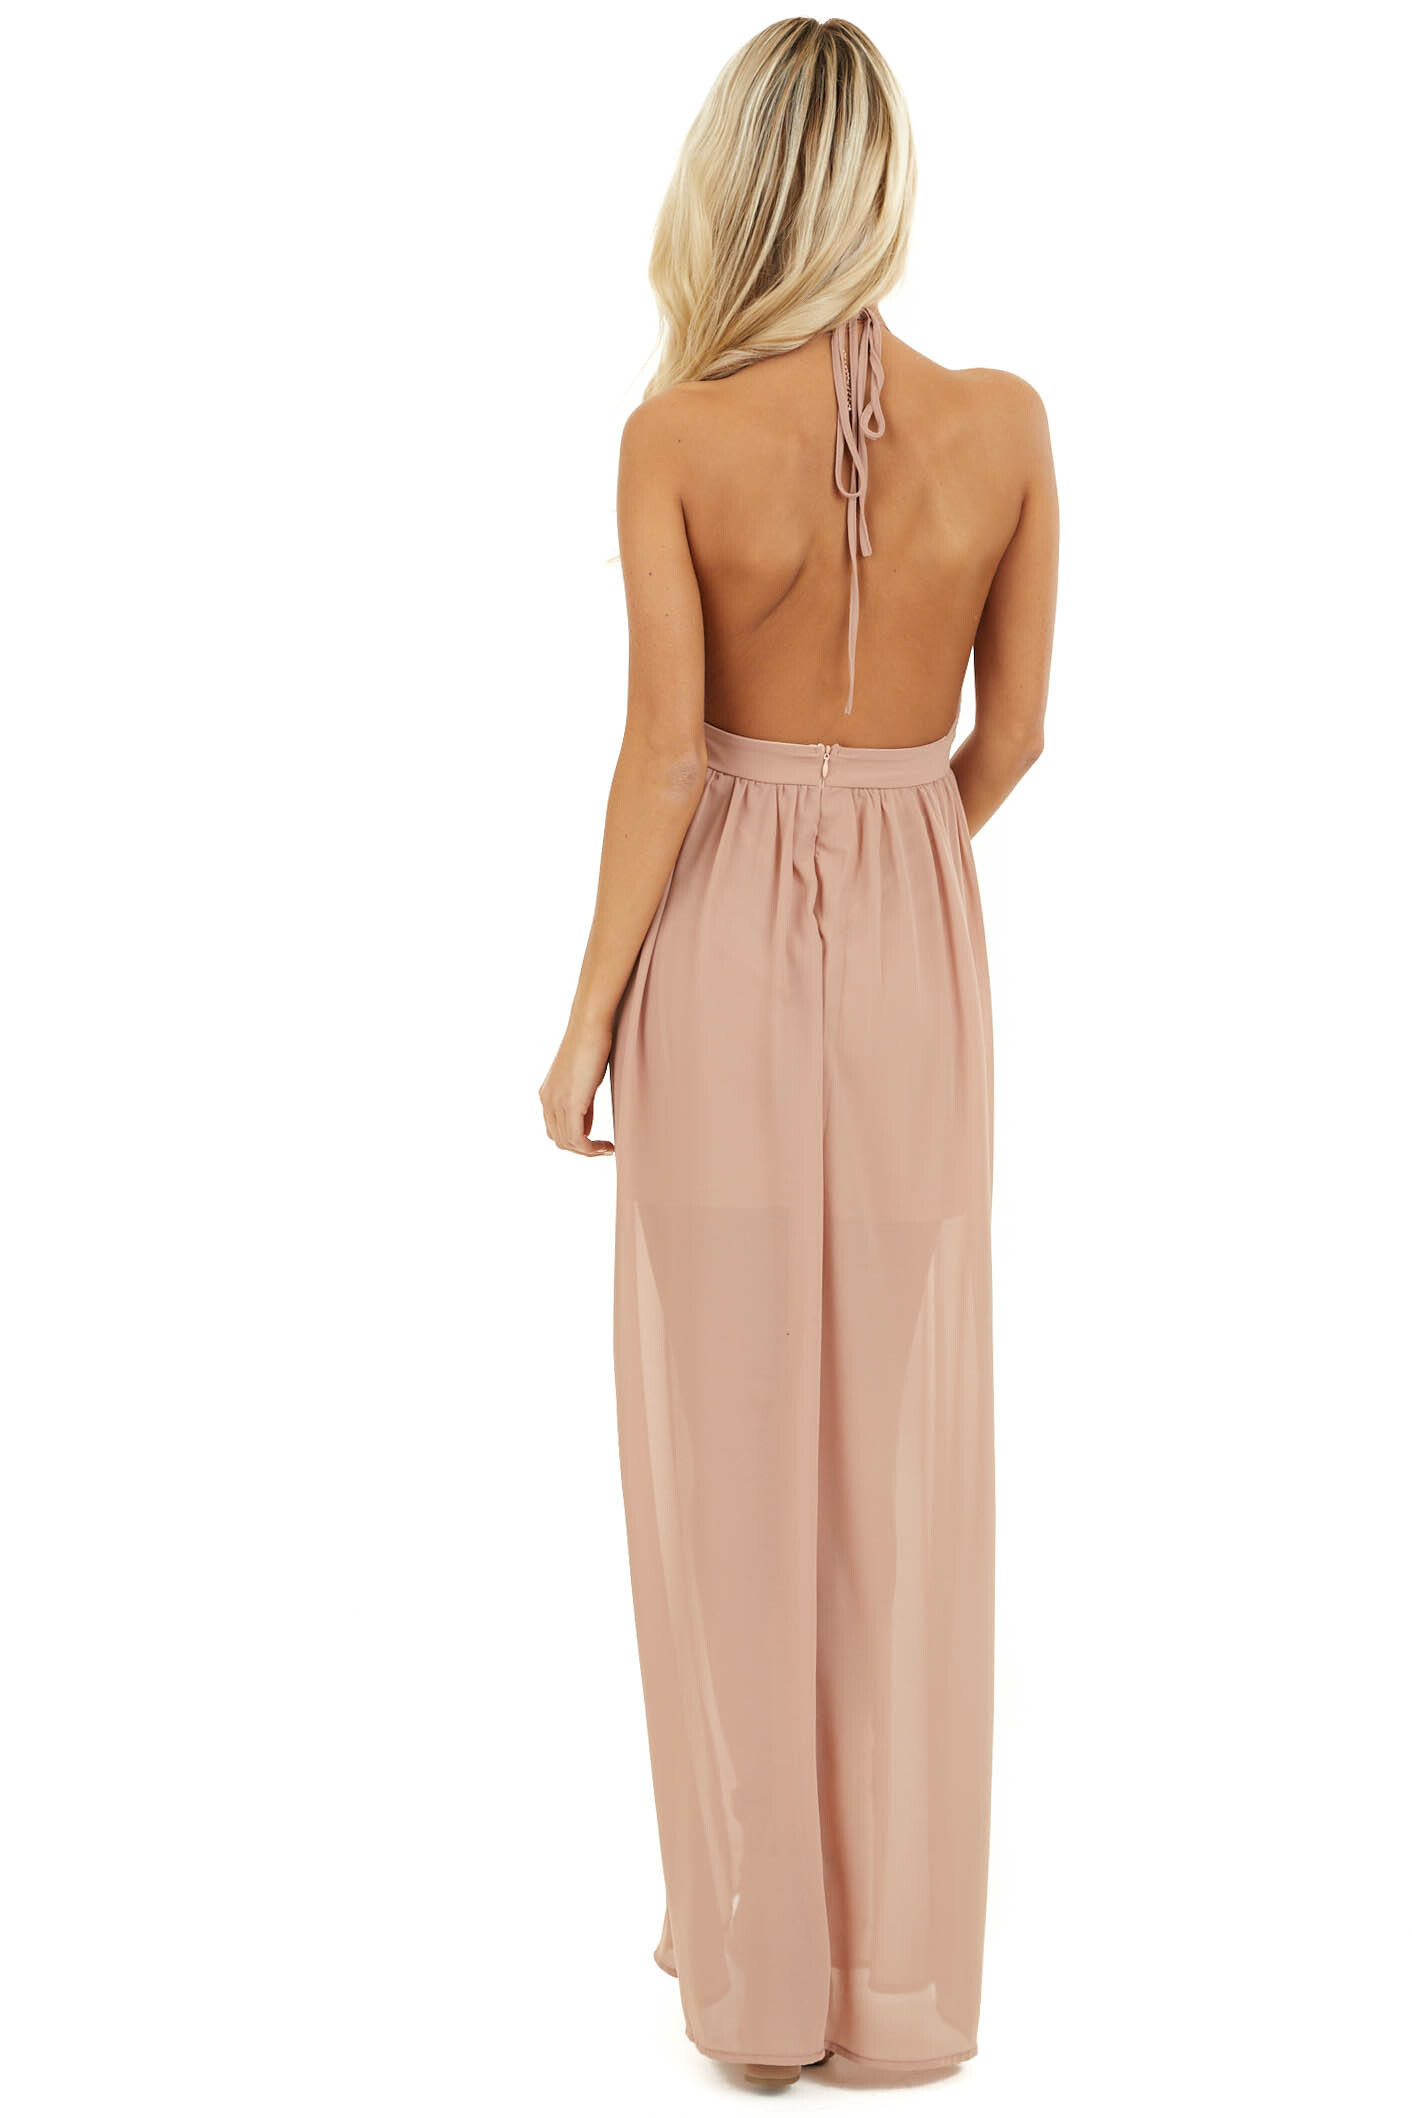 Blush Pink Sleeveless Halter Maxi Dress with Sequined Bodice back full body